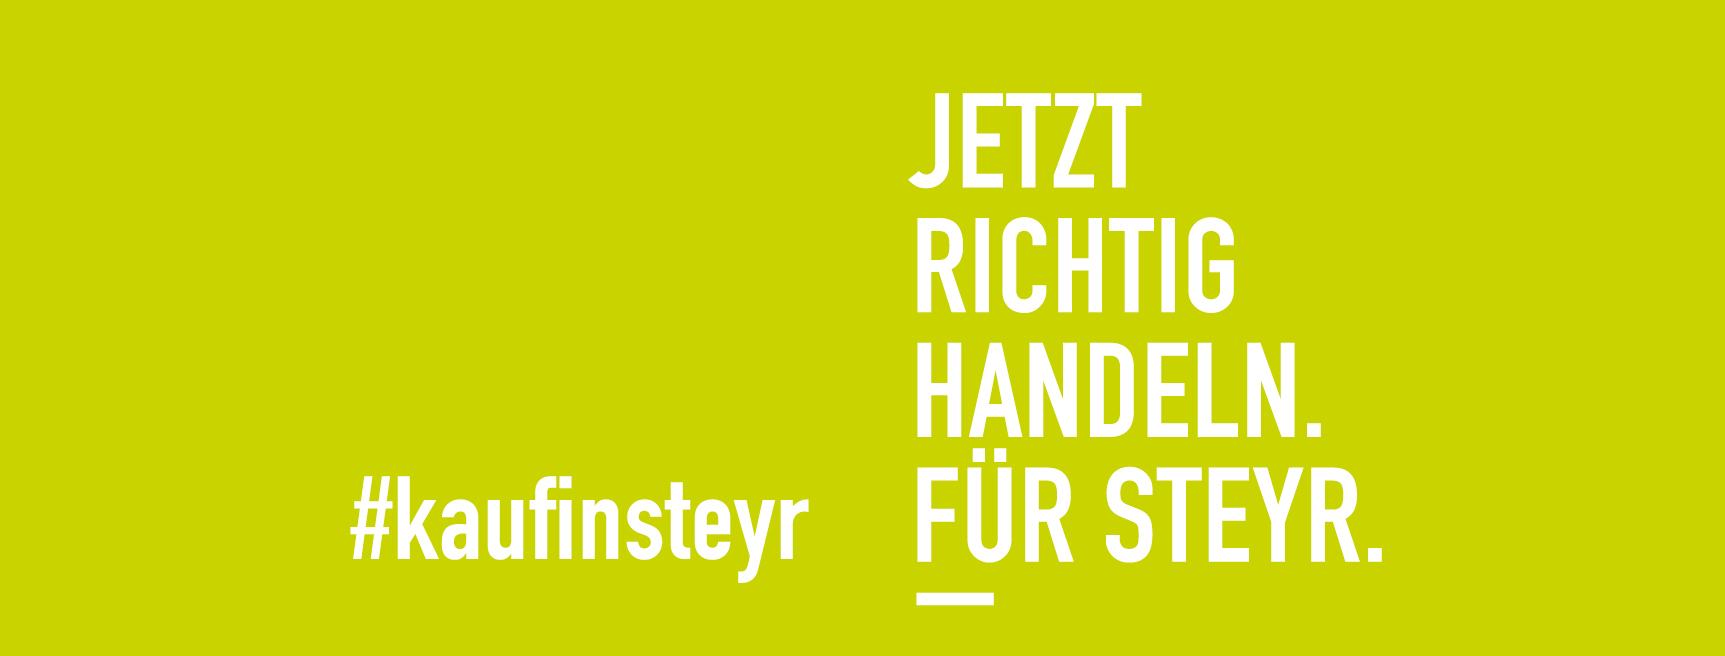 Banner Stadtmarketing kaufinsteyr